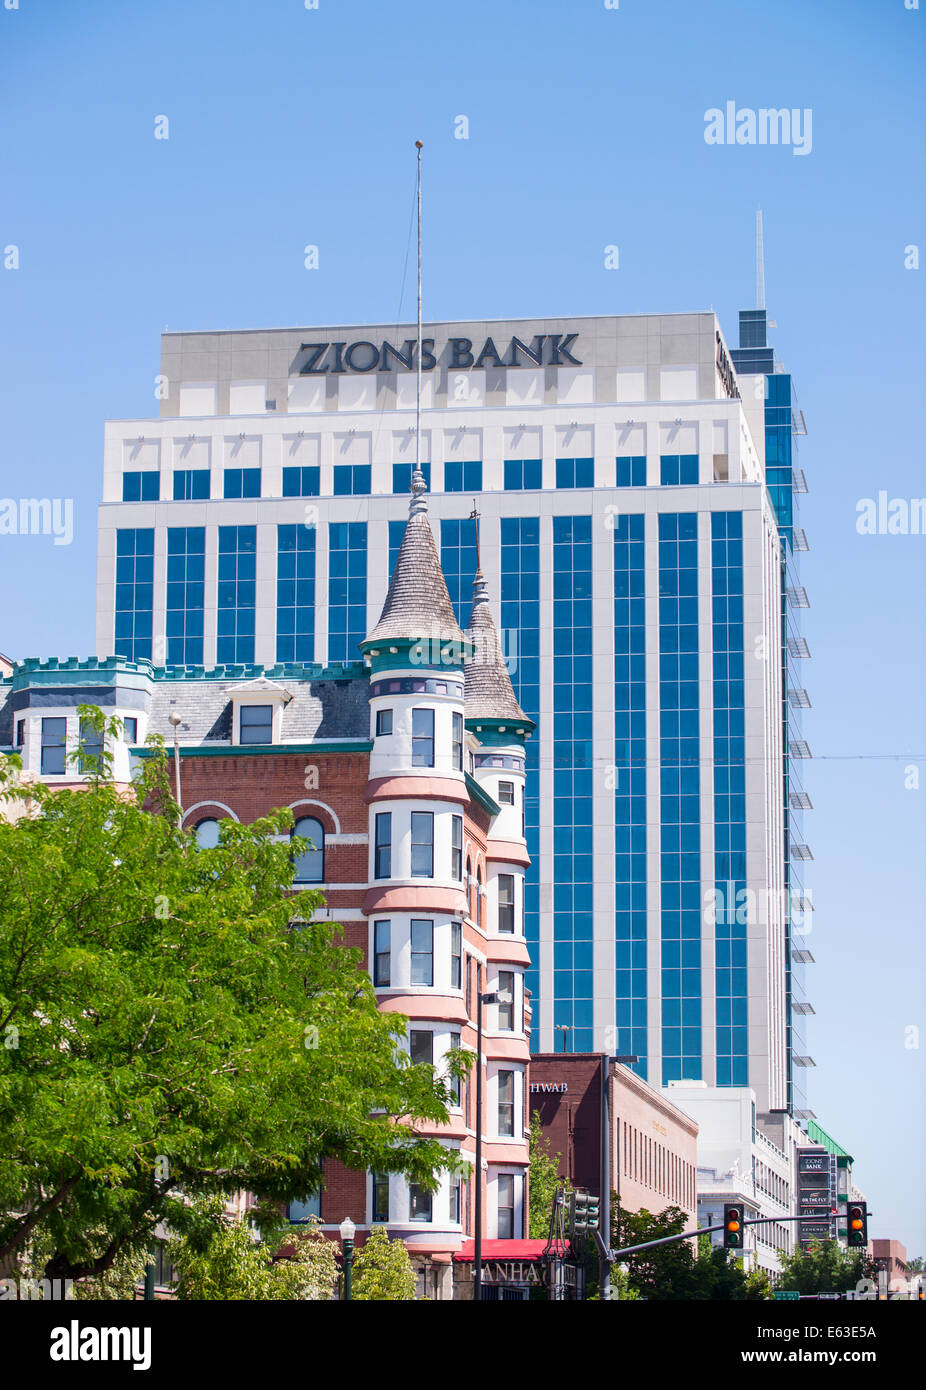 Downtown Boise Skyline,The Idanha Hotel built in 1901 is dwarfed by the new Zion Bank Building, Boise, Idaho - Stock Image